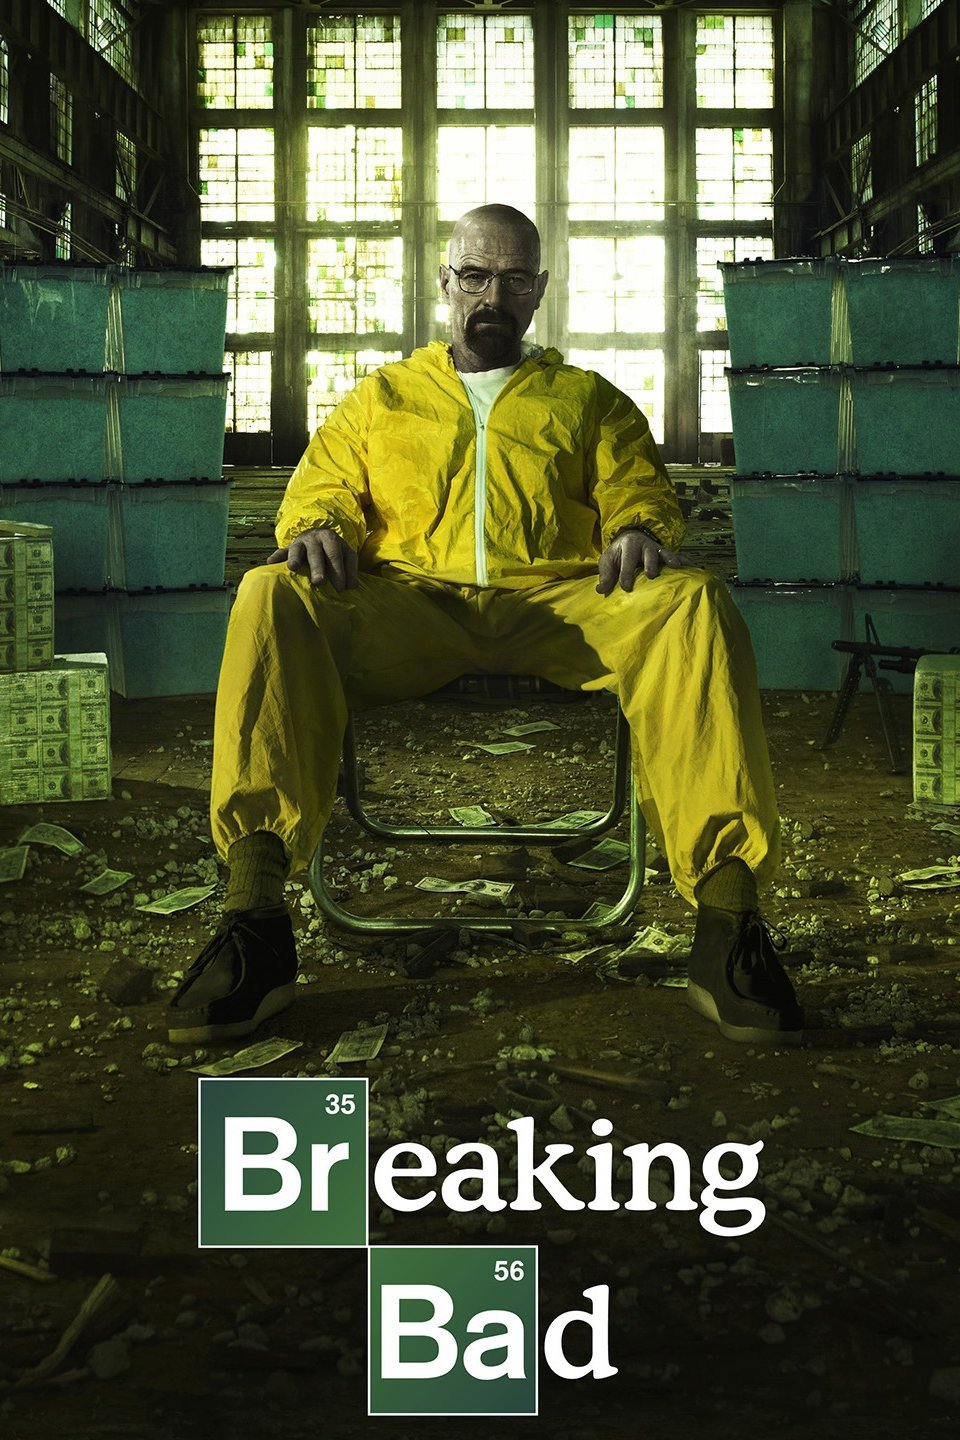 breaking bad s04e07 subtitles